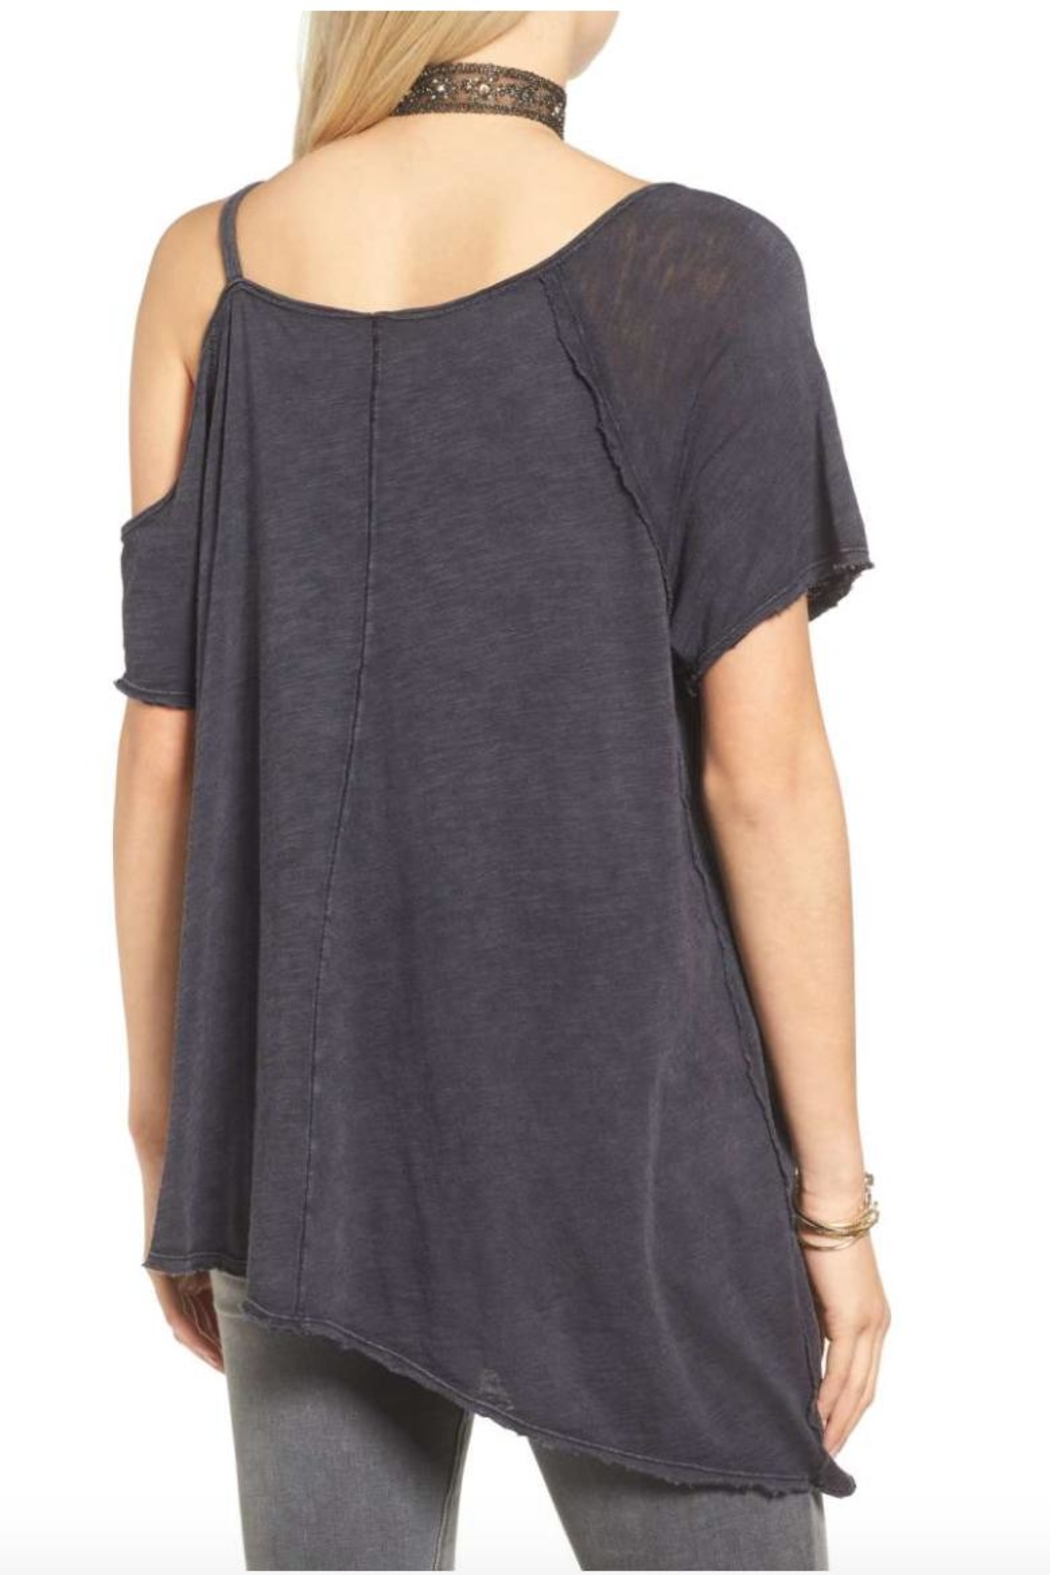 Free People Cut Out Washed Tee - Front Full Image